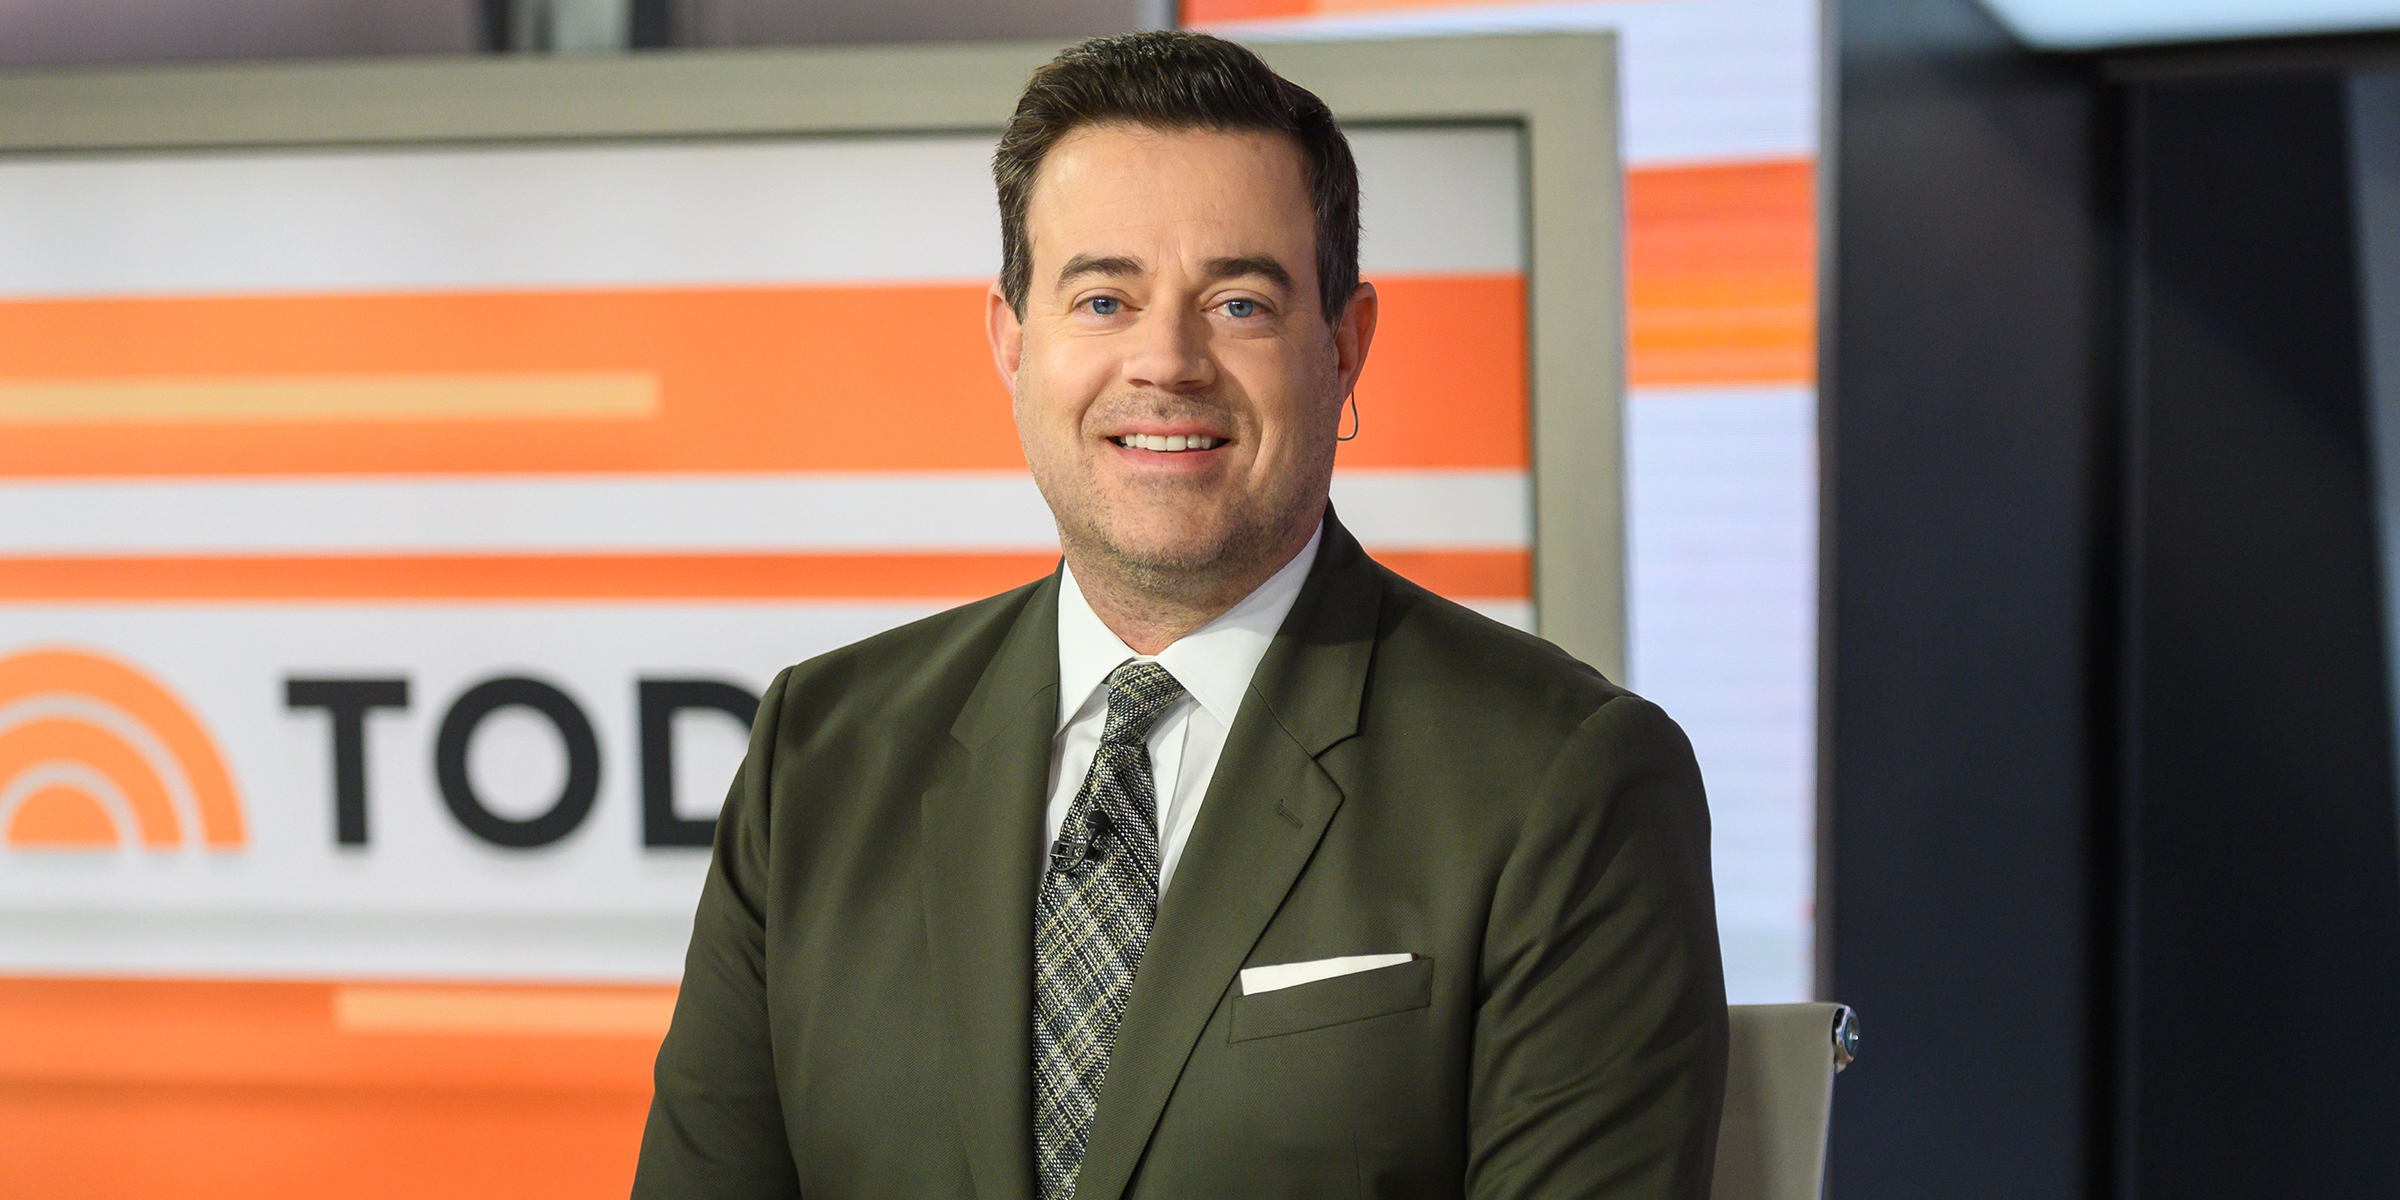 Father S Day 2020 Carson Daly Celebrates With All 4 Kids